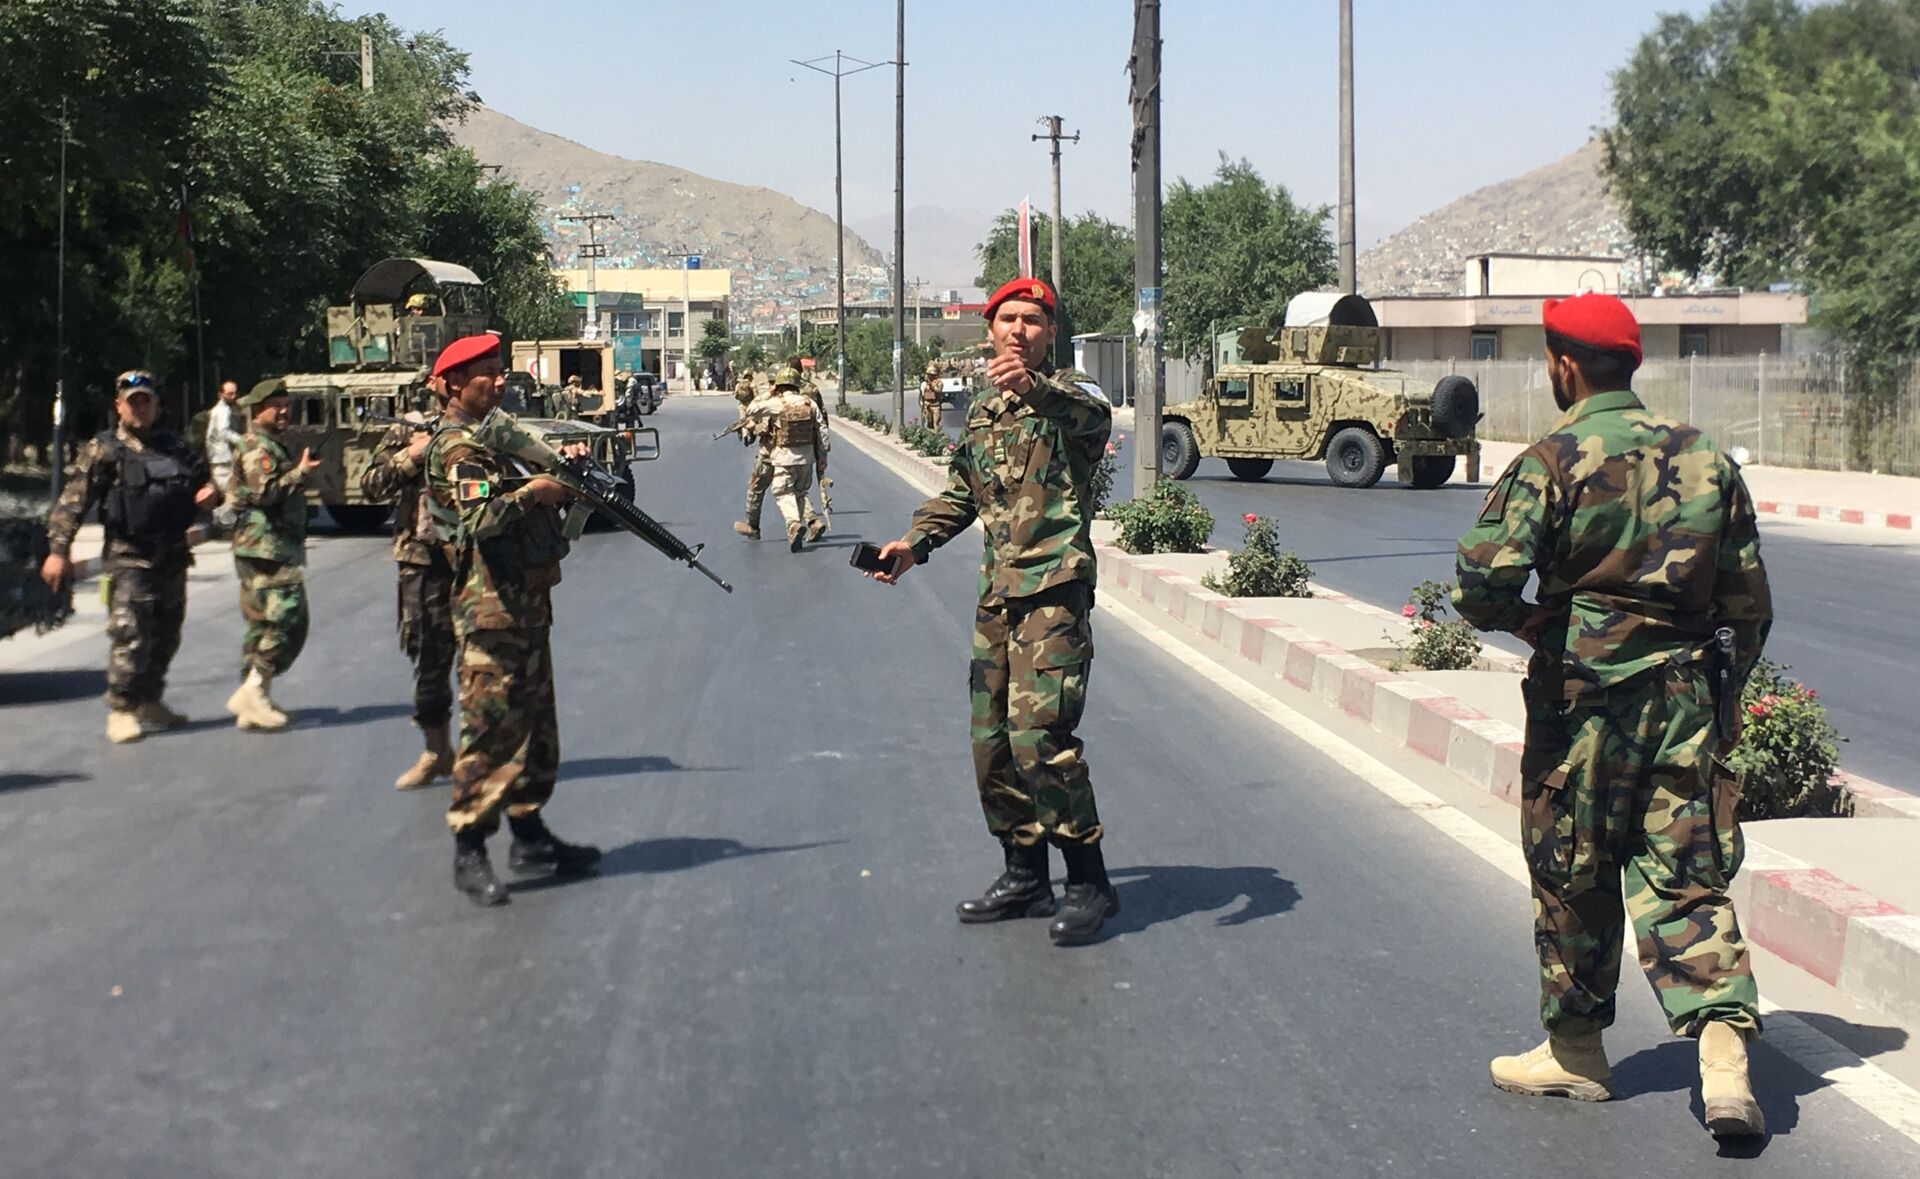 Afghan security forces arrive at the site of an explosion in Kabul, Afghanistan - Sputnik International, 1920, 07.09.2021